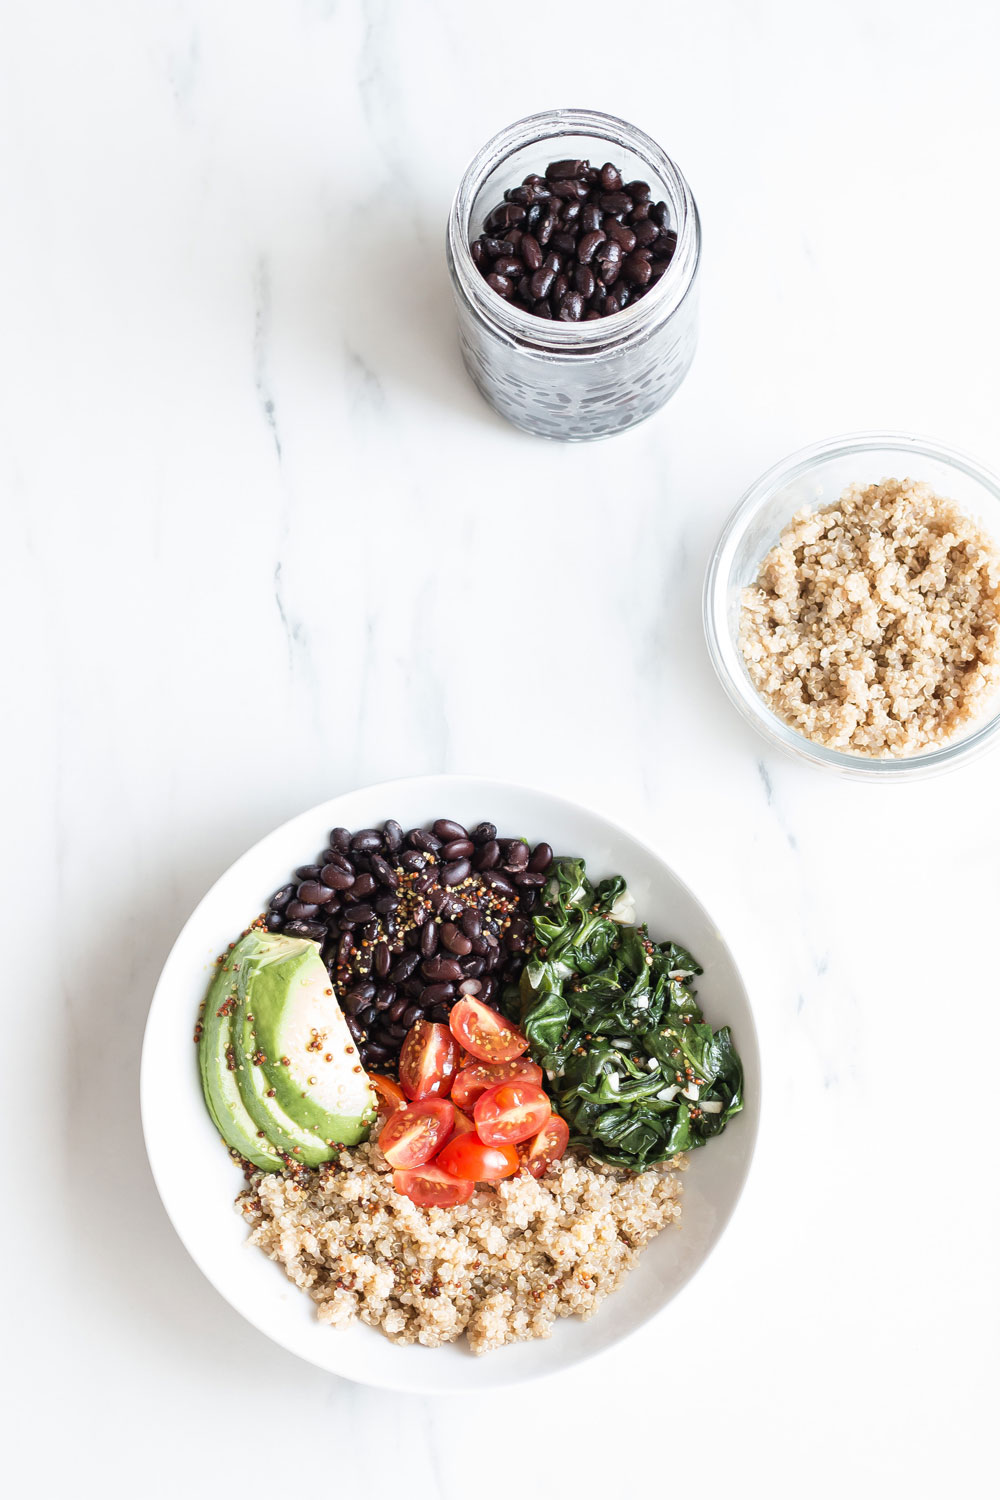 Plant-Based Black Bean & Quinoa Bowl Recipe: The ideal lunch for a busy day and a smart girl! https://www.spotebi.com/recipes/plant-based-black-bean-quinoa-bowl/